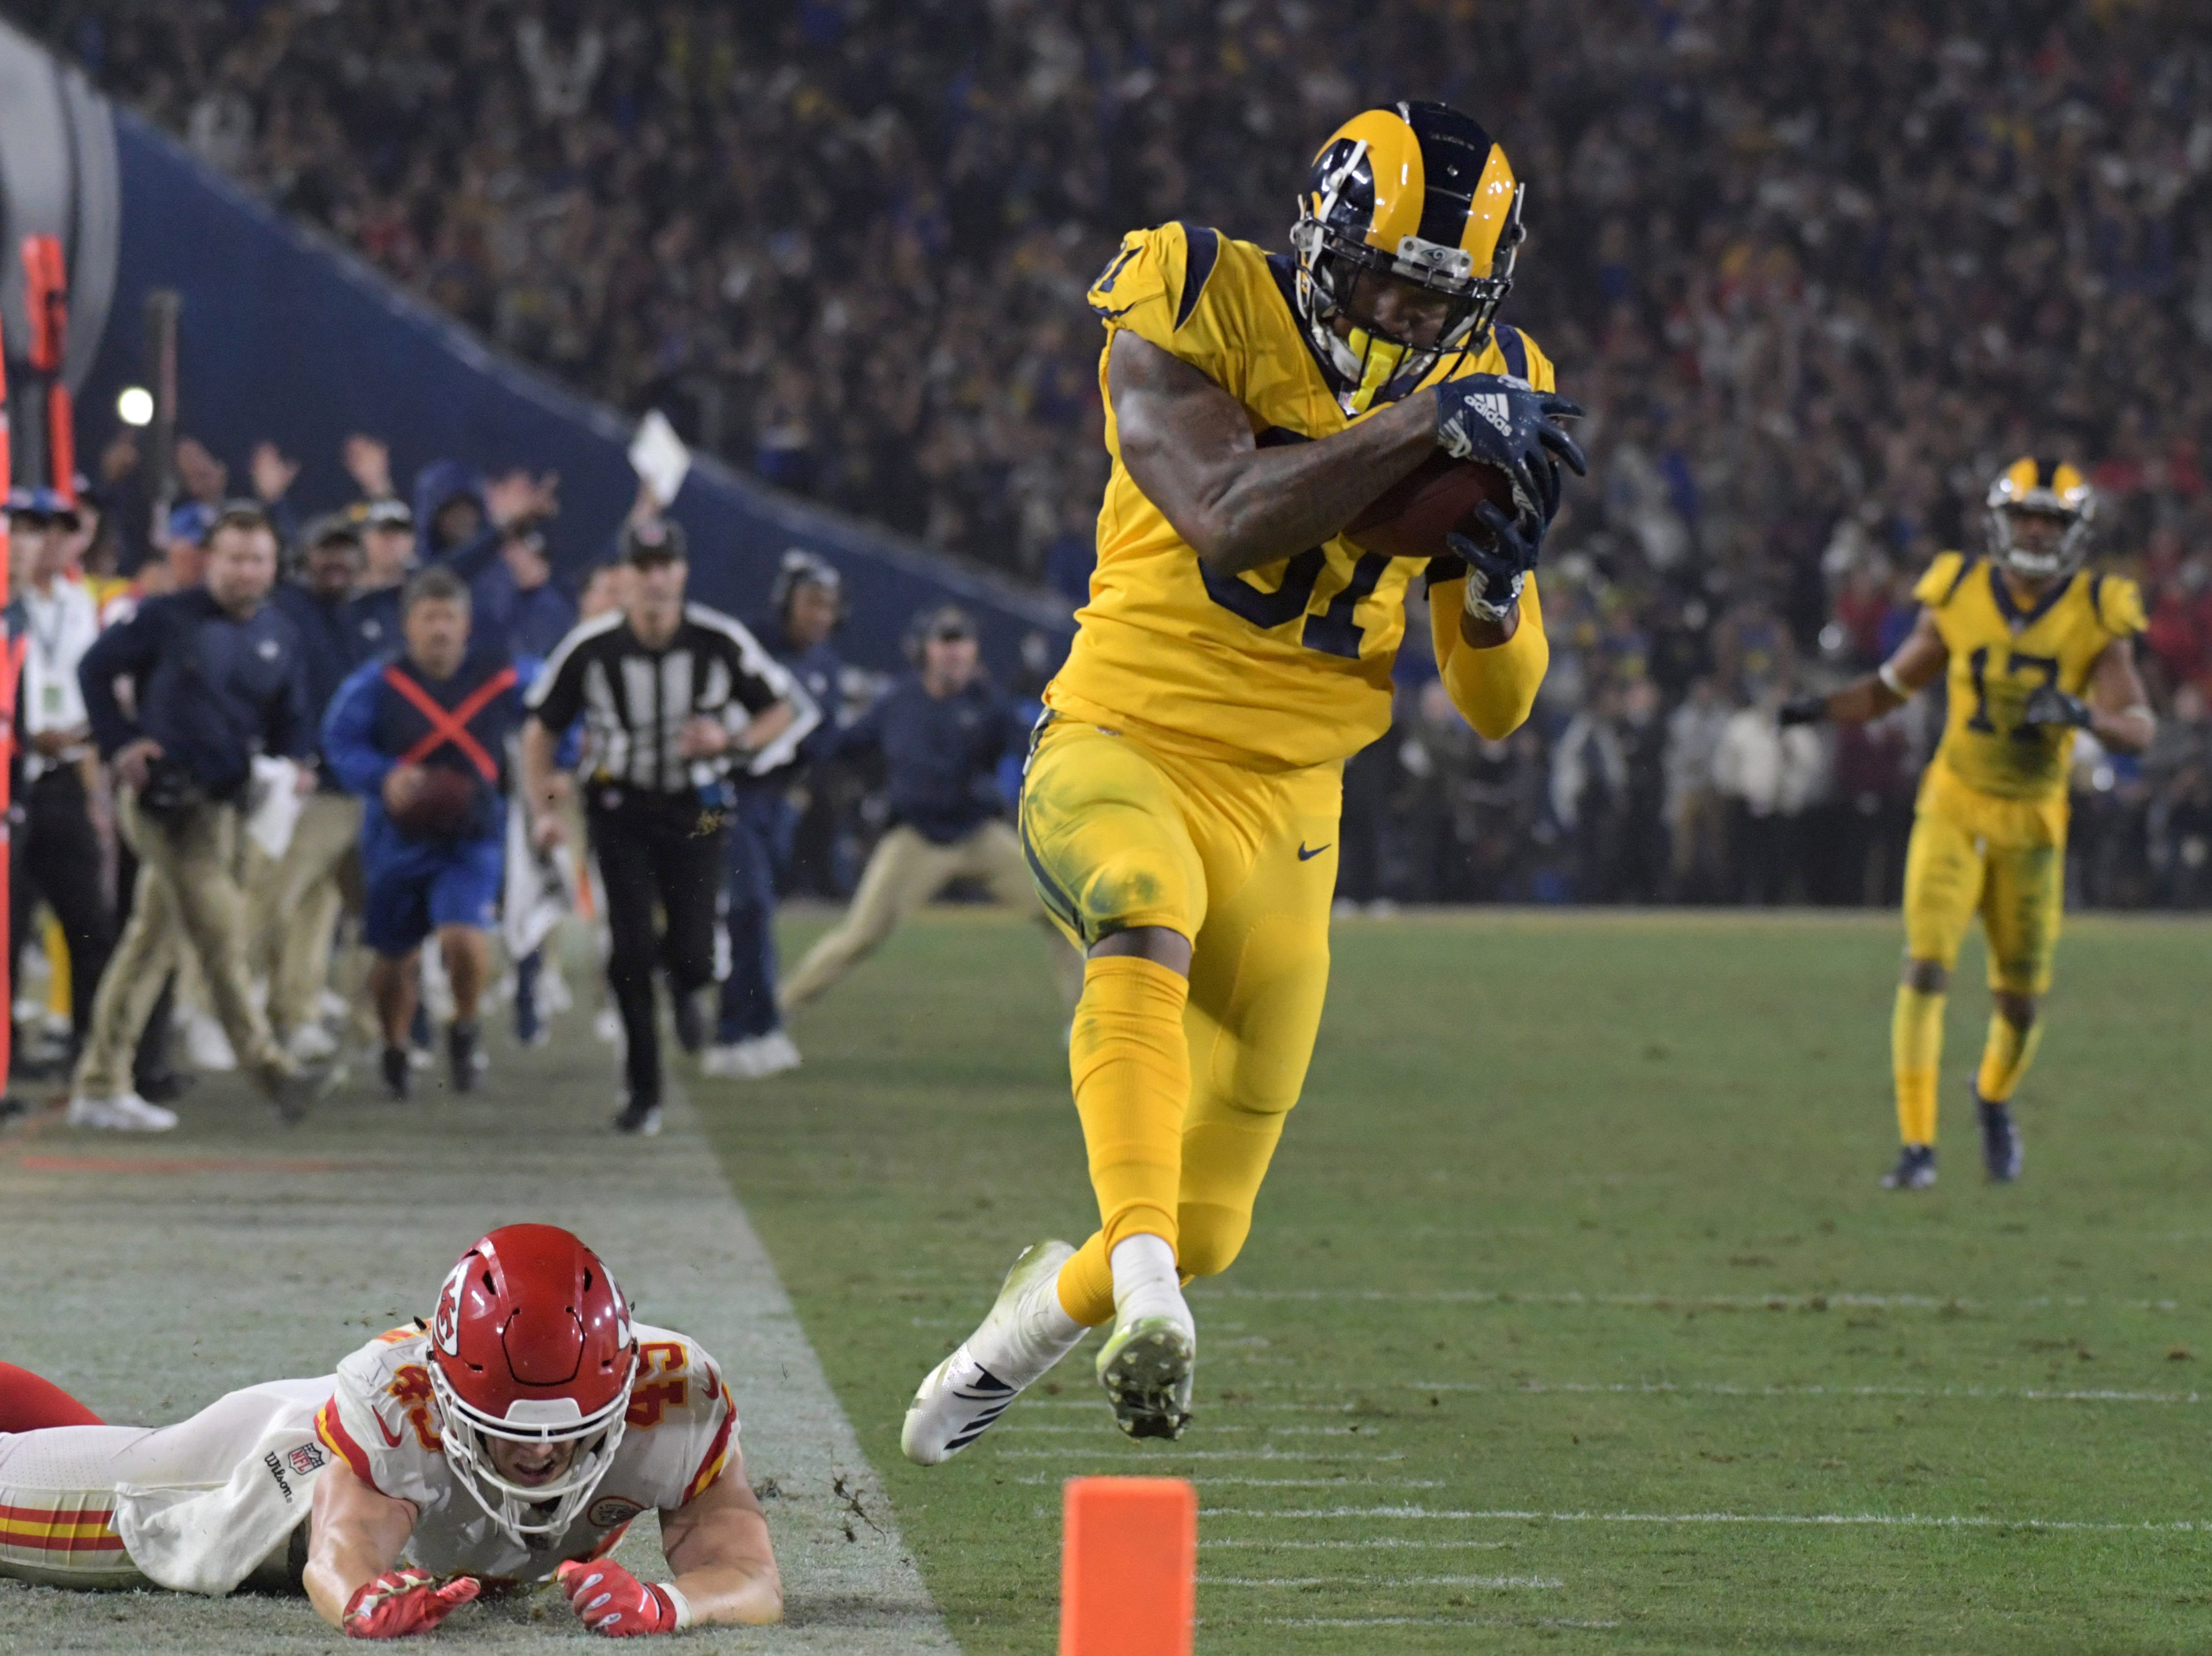 Nov. 19: Los Angeles Rams tight end Gerald Everett scores a touchdown with 58 seconds to go against the Kansas City Chiefs in what finished as the highest-scoring Monday Night Football game of all time.